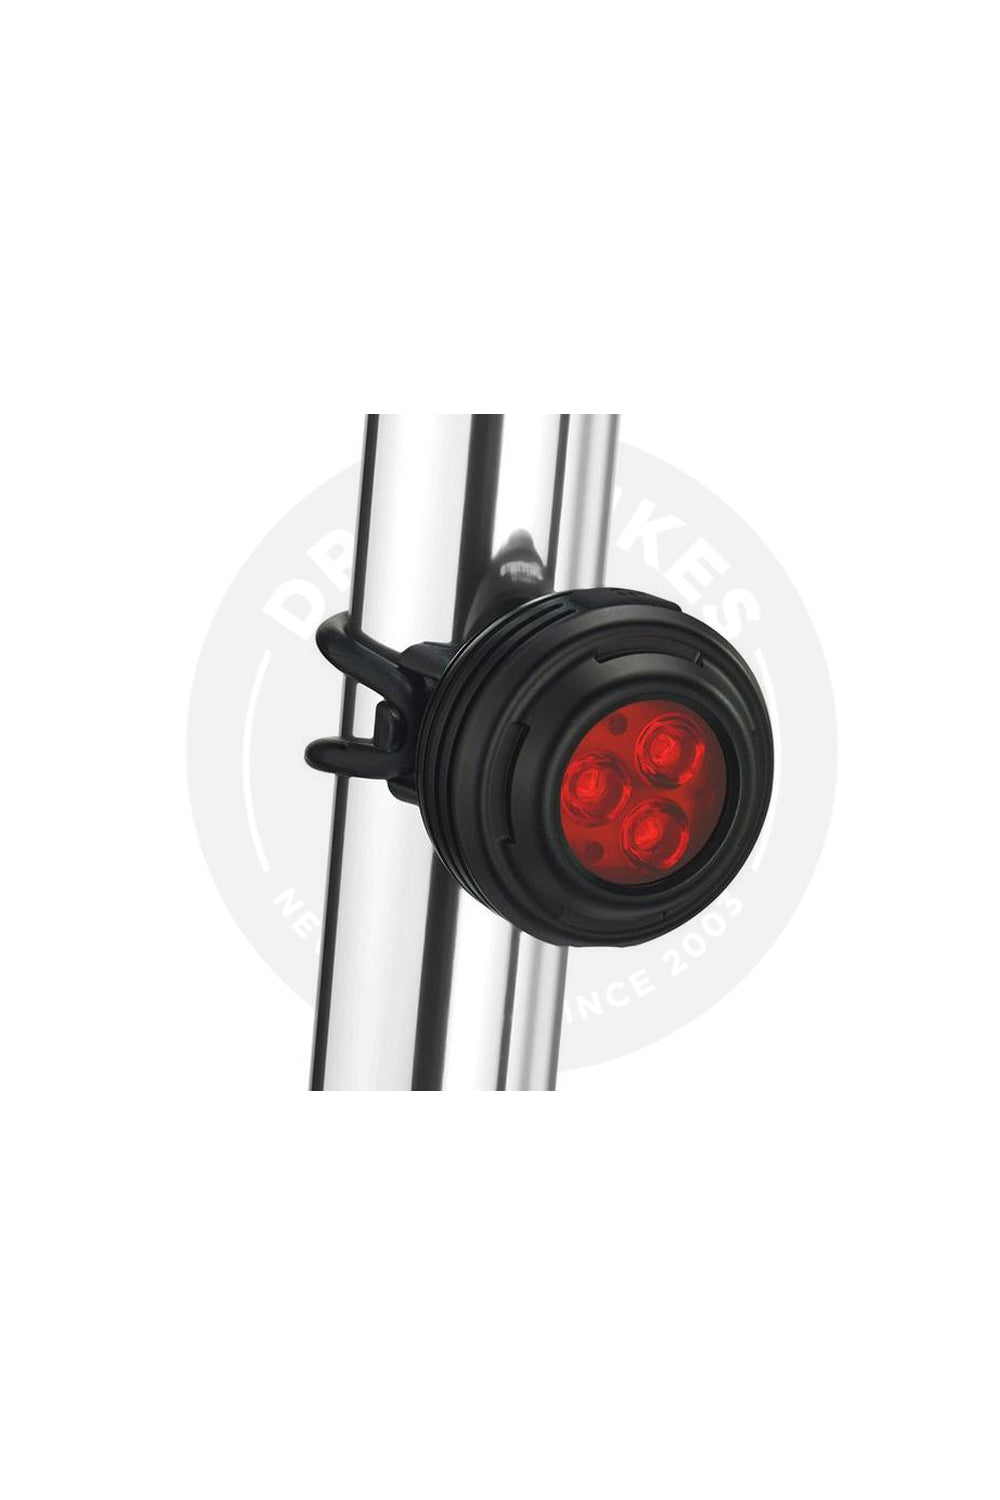 Light Gemini Iris Rear Light Led System